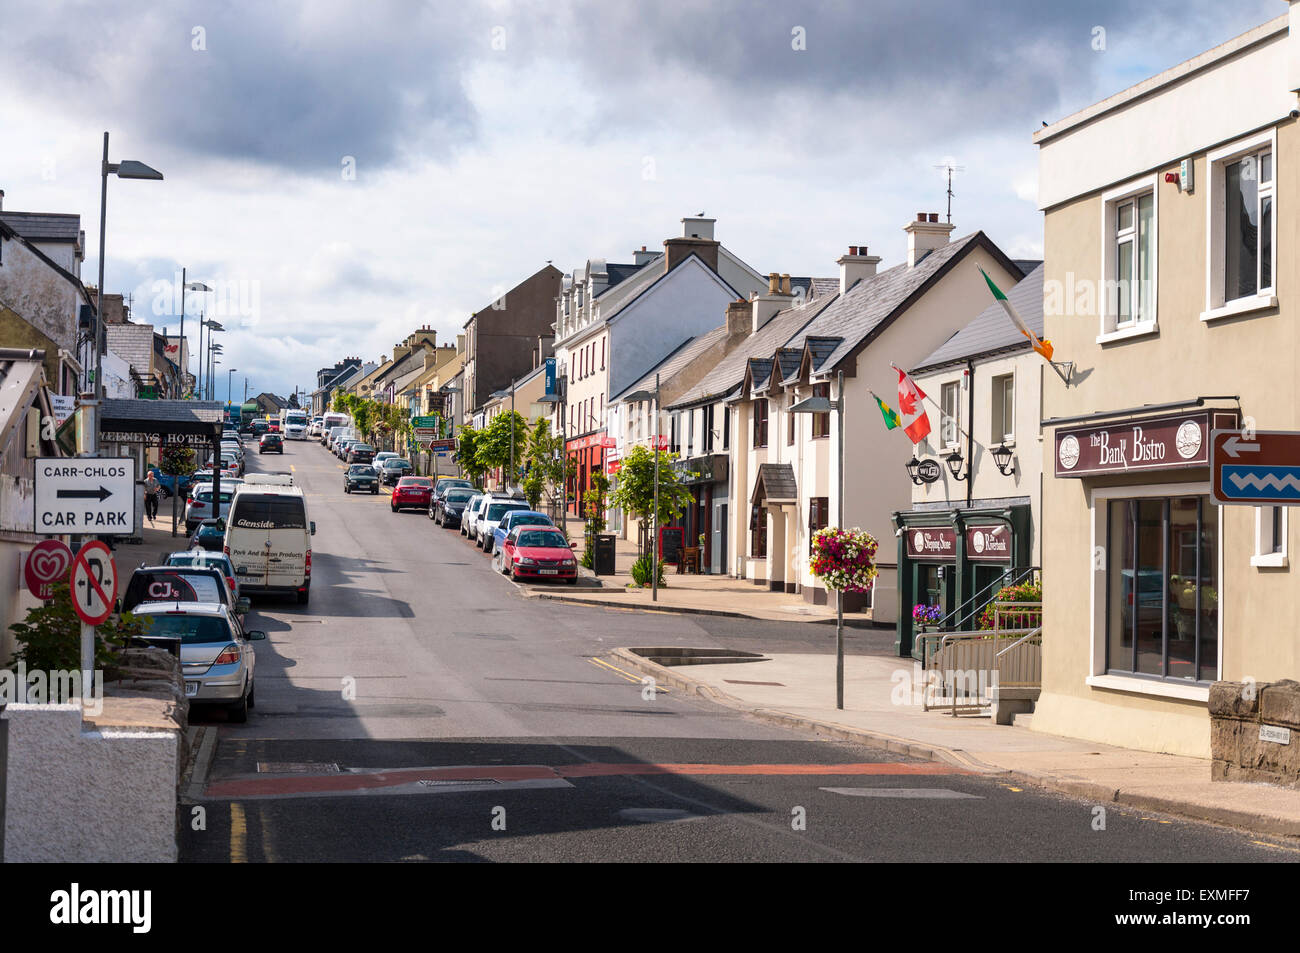 An Clochán Liath, Dungloe or Dunglow is a Gaeltacht town in County Donegal, Ireland. It is the main town in - Stock Image